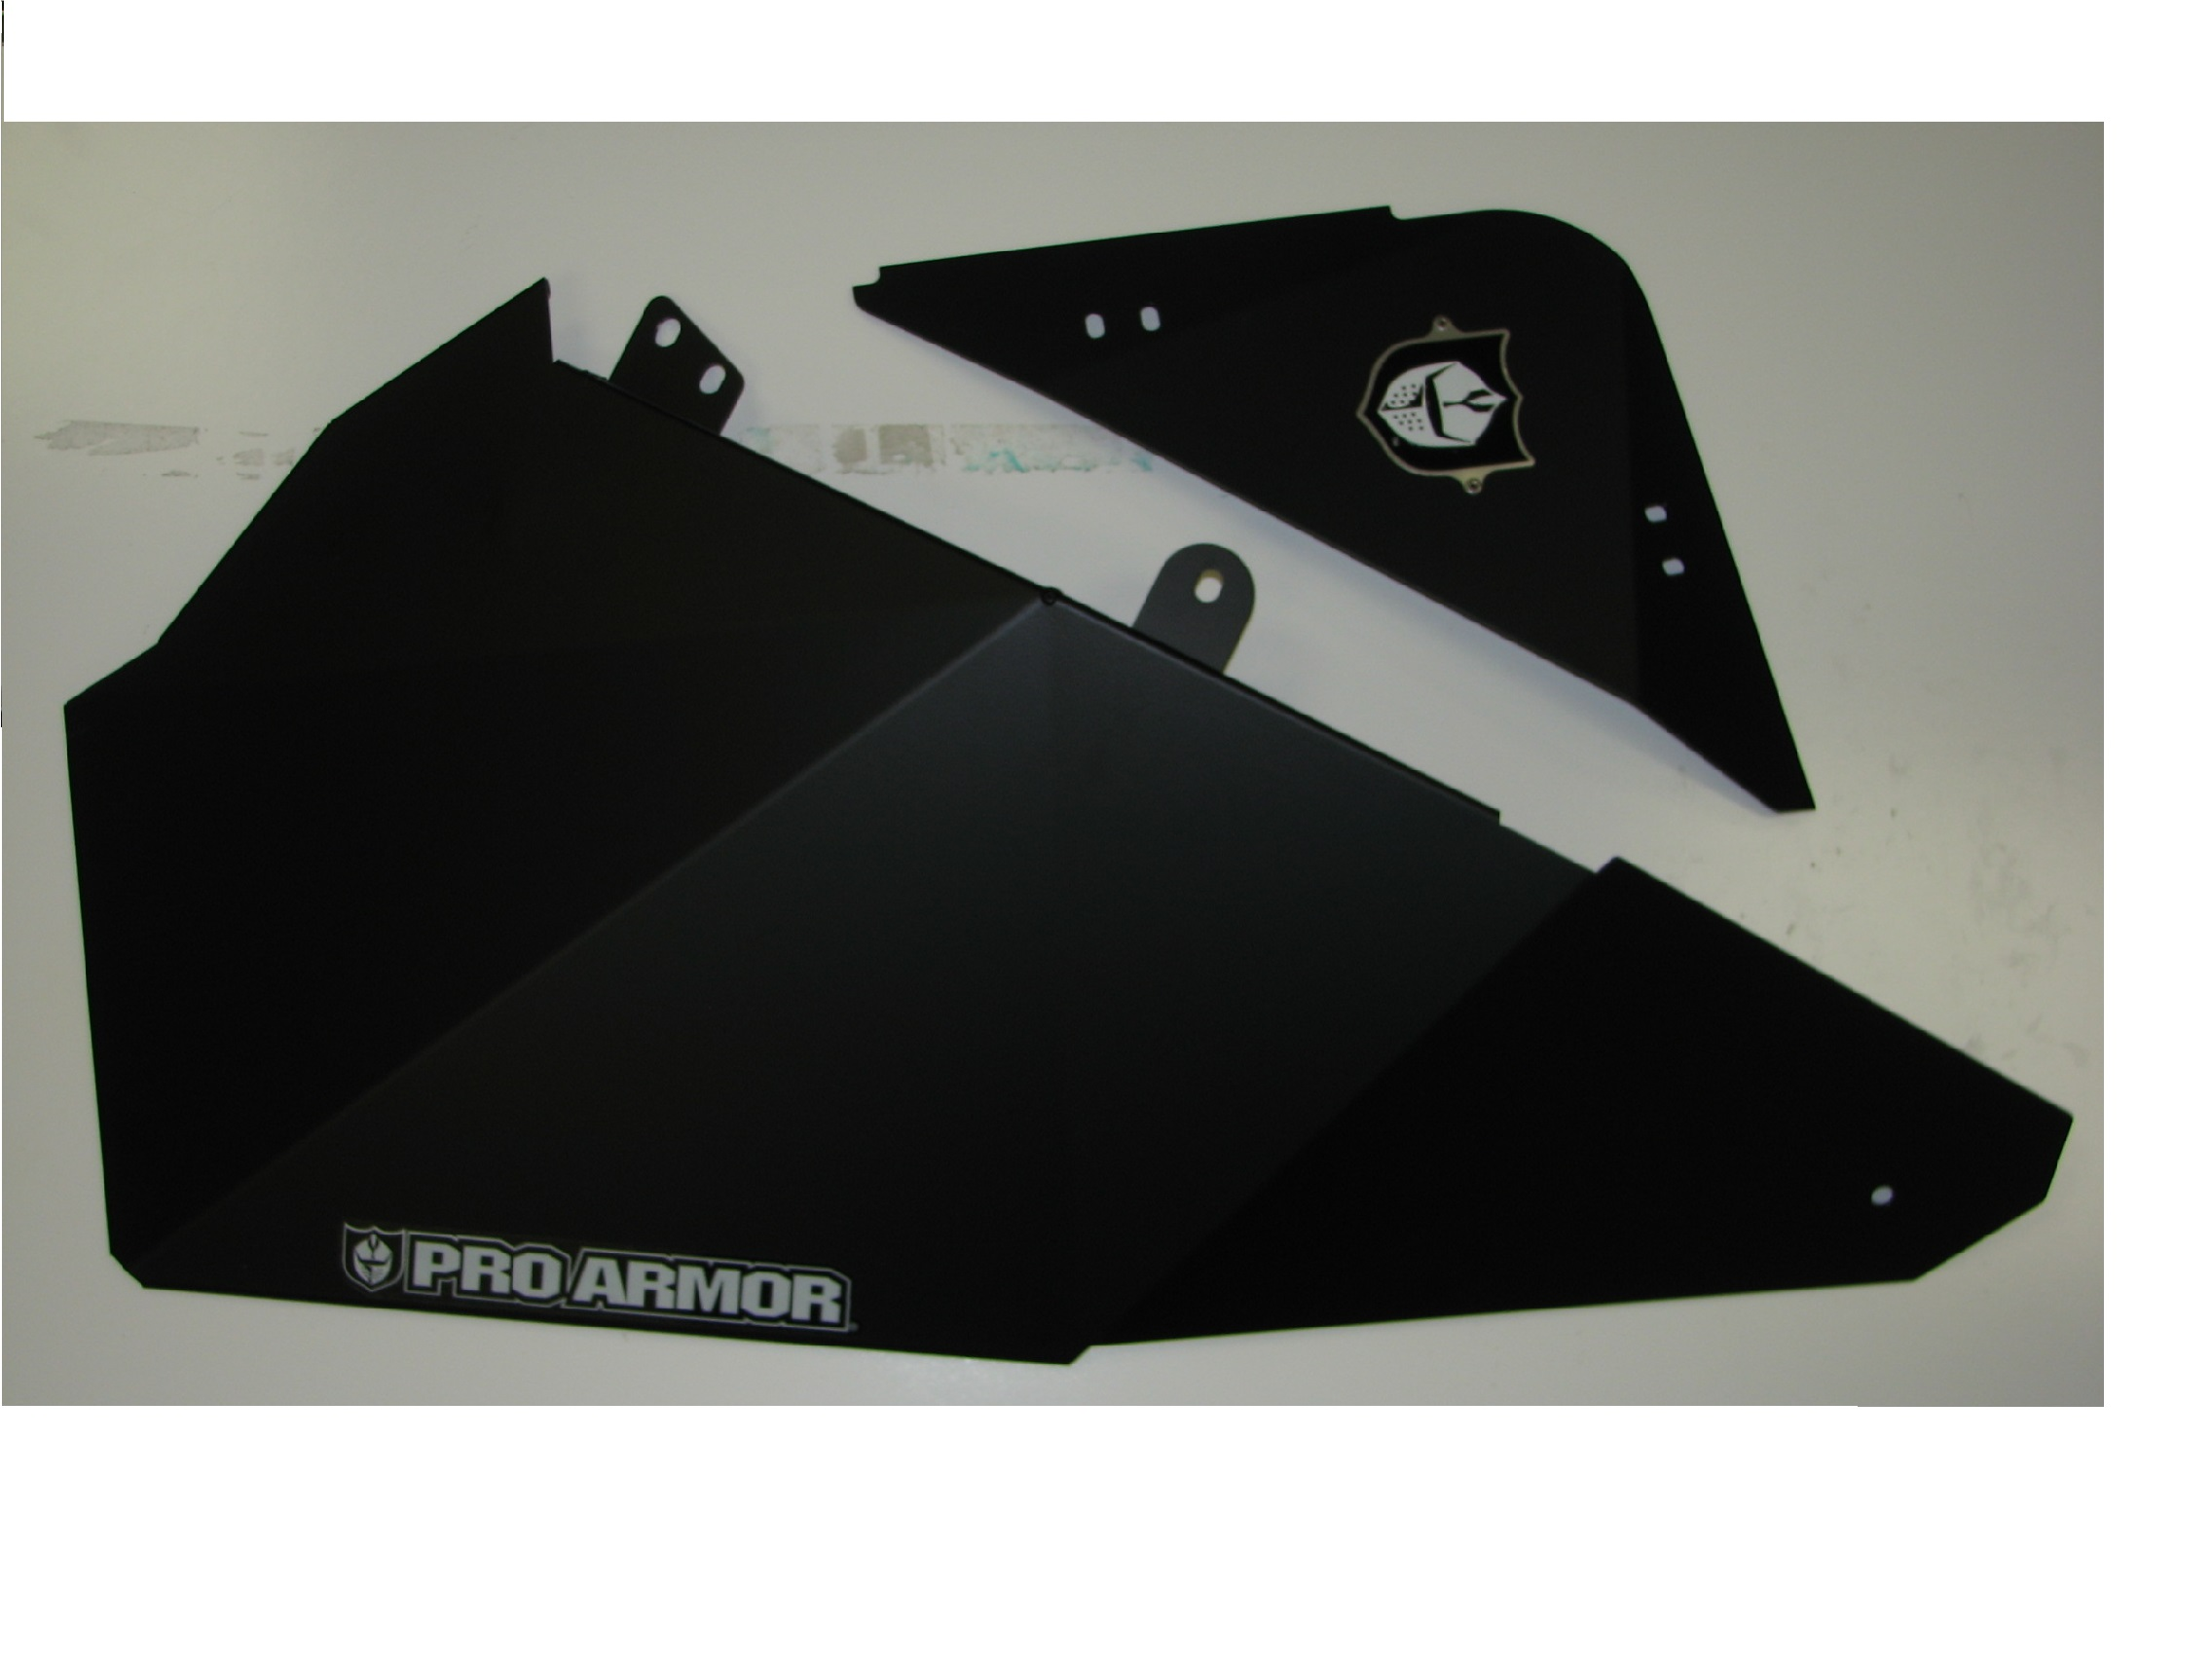 Pro armor stealth lower door inserts for polaris rzr xp for 1000 door